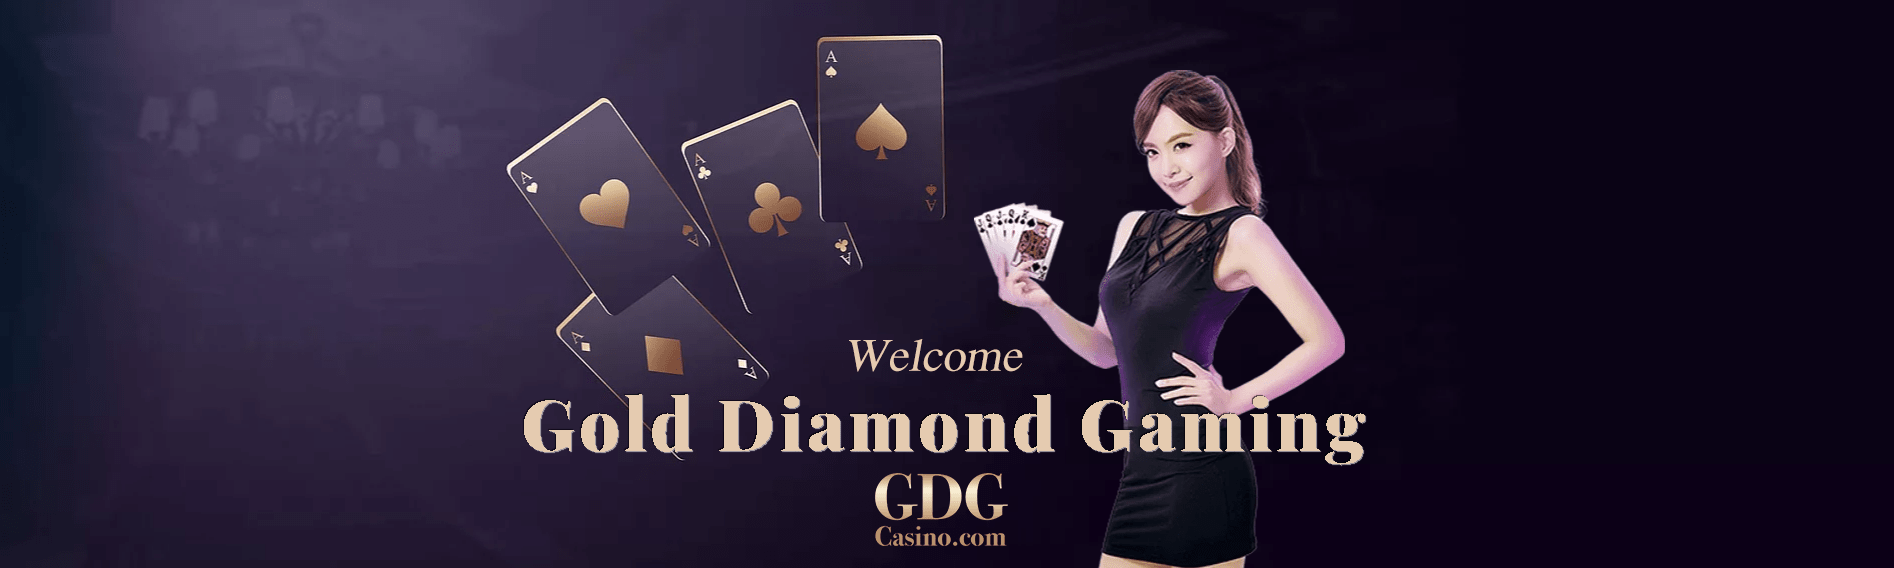 welcome-to-GDGCasino